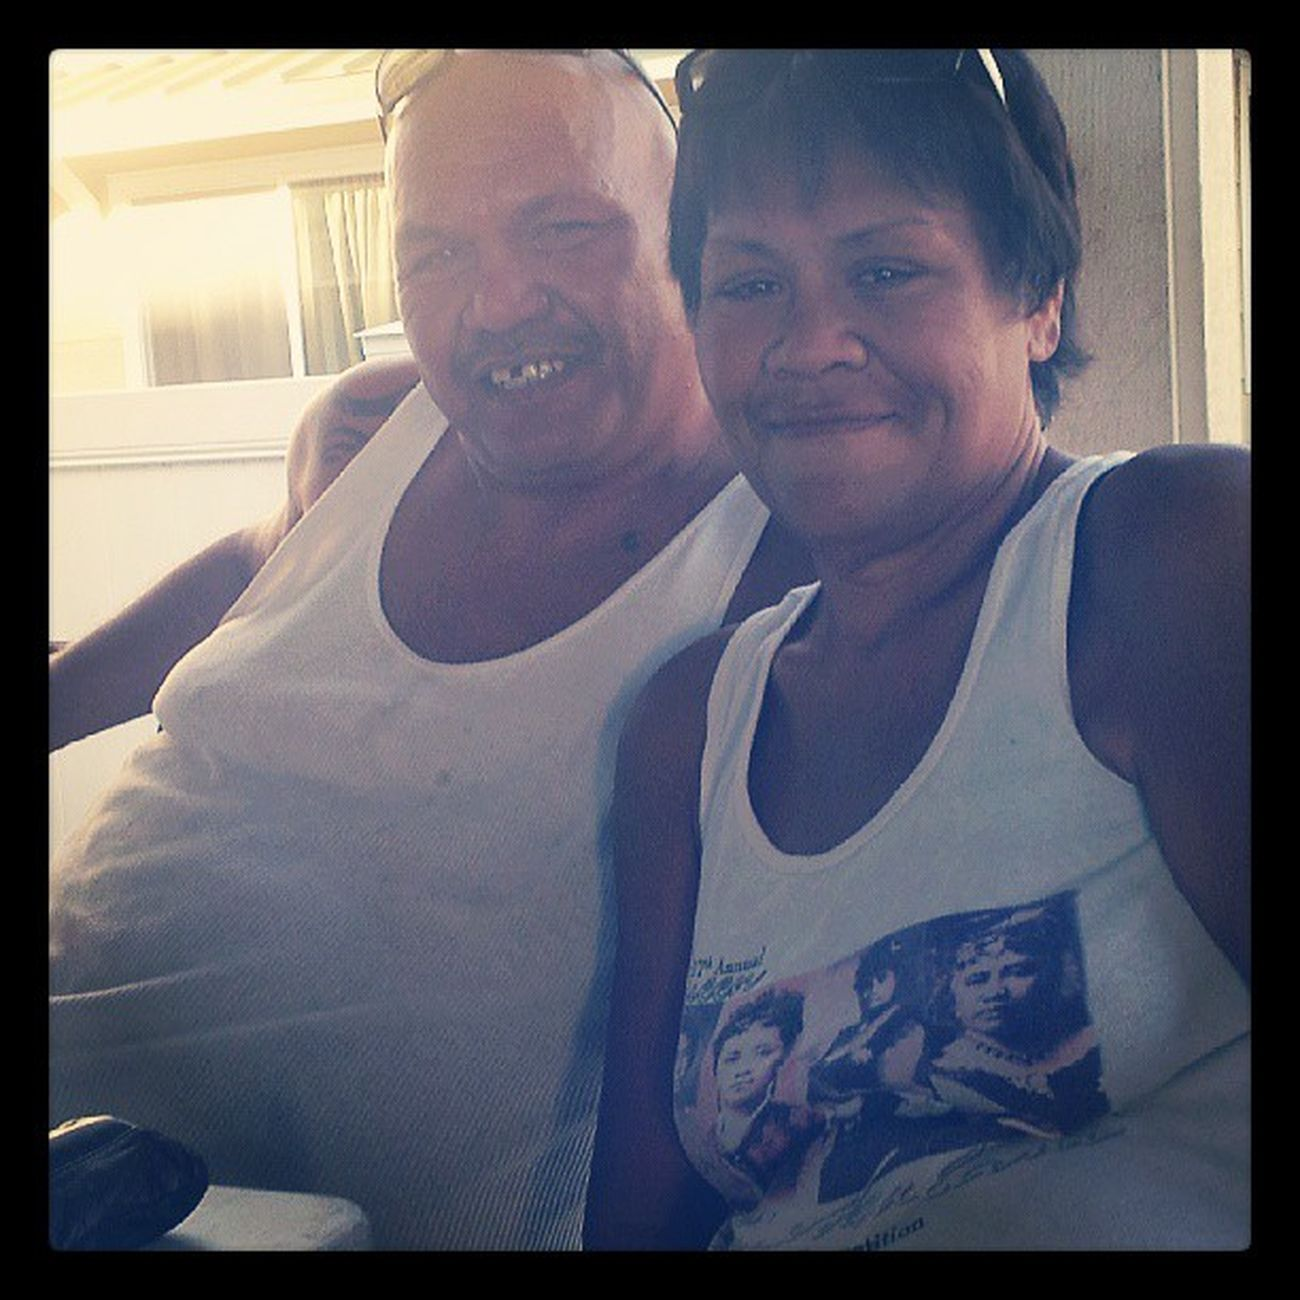 My parentalz! Loveum